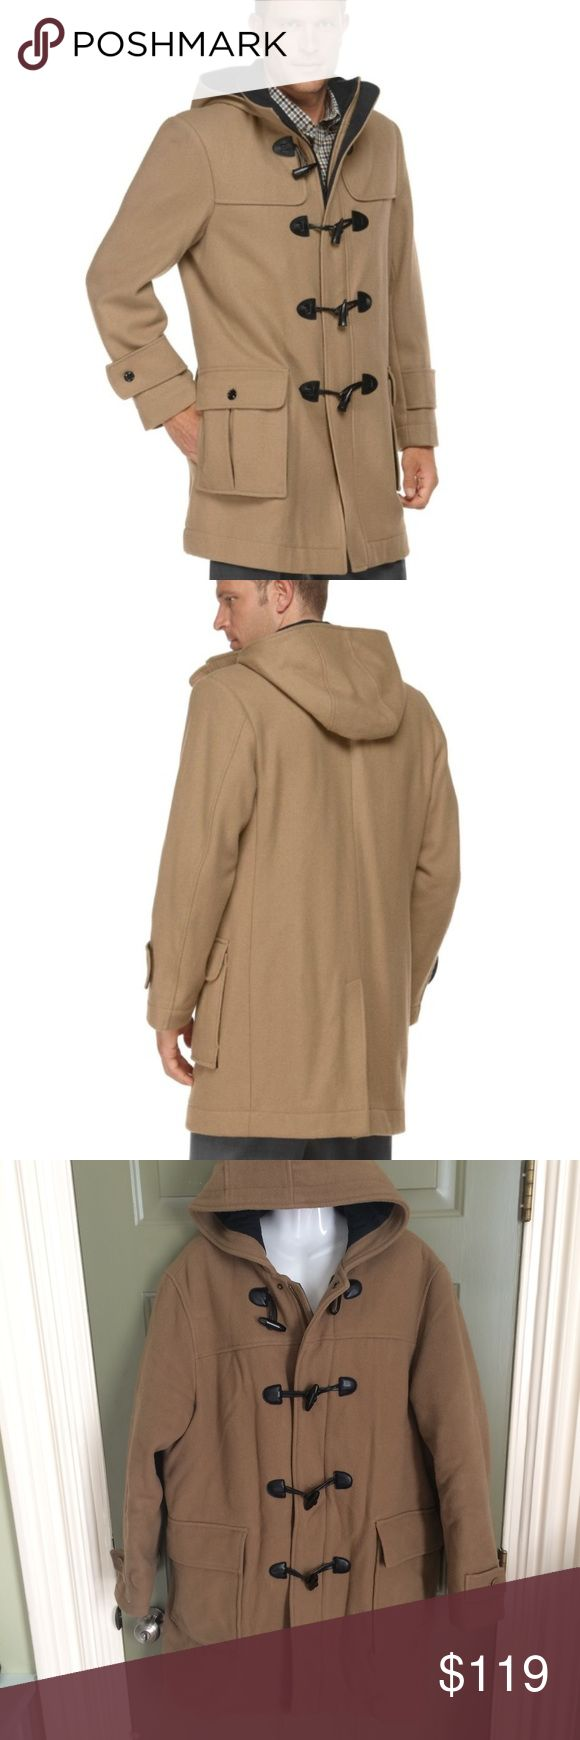 WOOL&THINSULATE JACKET COAT DUFFLE TOGGLE HOOD TAN This Coat Cost $269 after tax. ❤️QUALITY MADE JACKET.  ❤️GENUINE SOFT Lambswool from Italy  & Warm Thinsulate lining PRETTY ❤️EXCELLENT CONDITION ❤️SAVE $169 at this price!!  Fits Women's Extra large/xxl OR Men's Large Pretty Toggles,pockets,zipper,large hood.  -STYLISH &VERSATILE  -WARM WINTER COAT LL BEAN QUALITY   Tag:maxi long full length knee length fit and flare fit n flare warm fall winter 3/4 length anorak utility duffel brown…